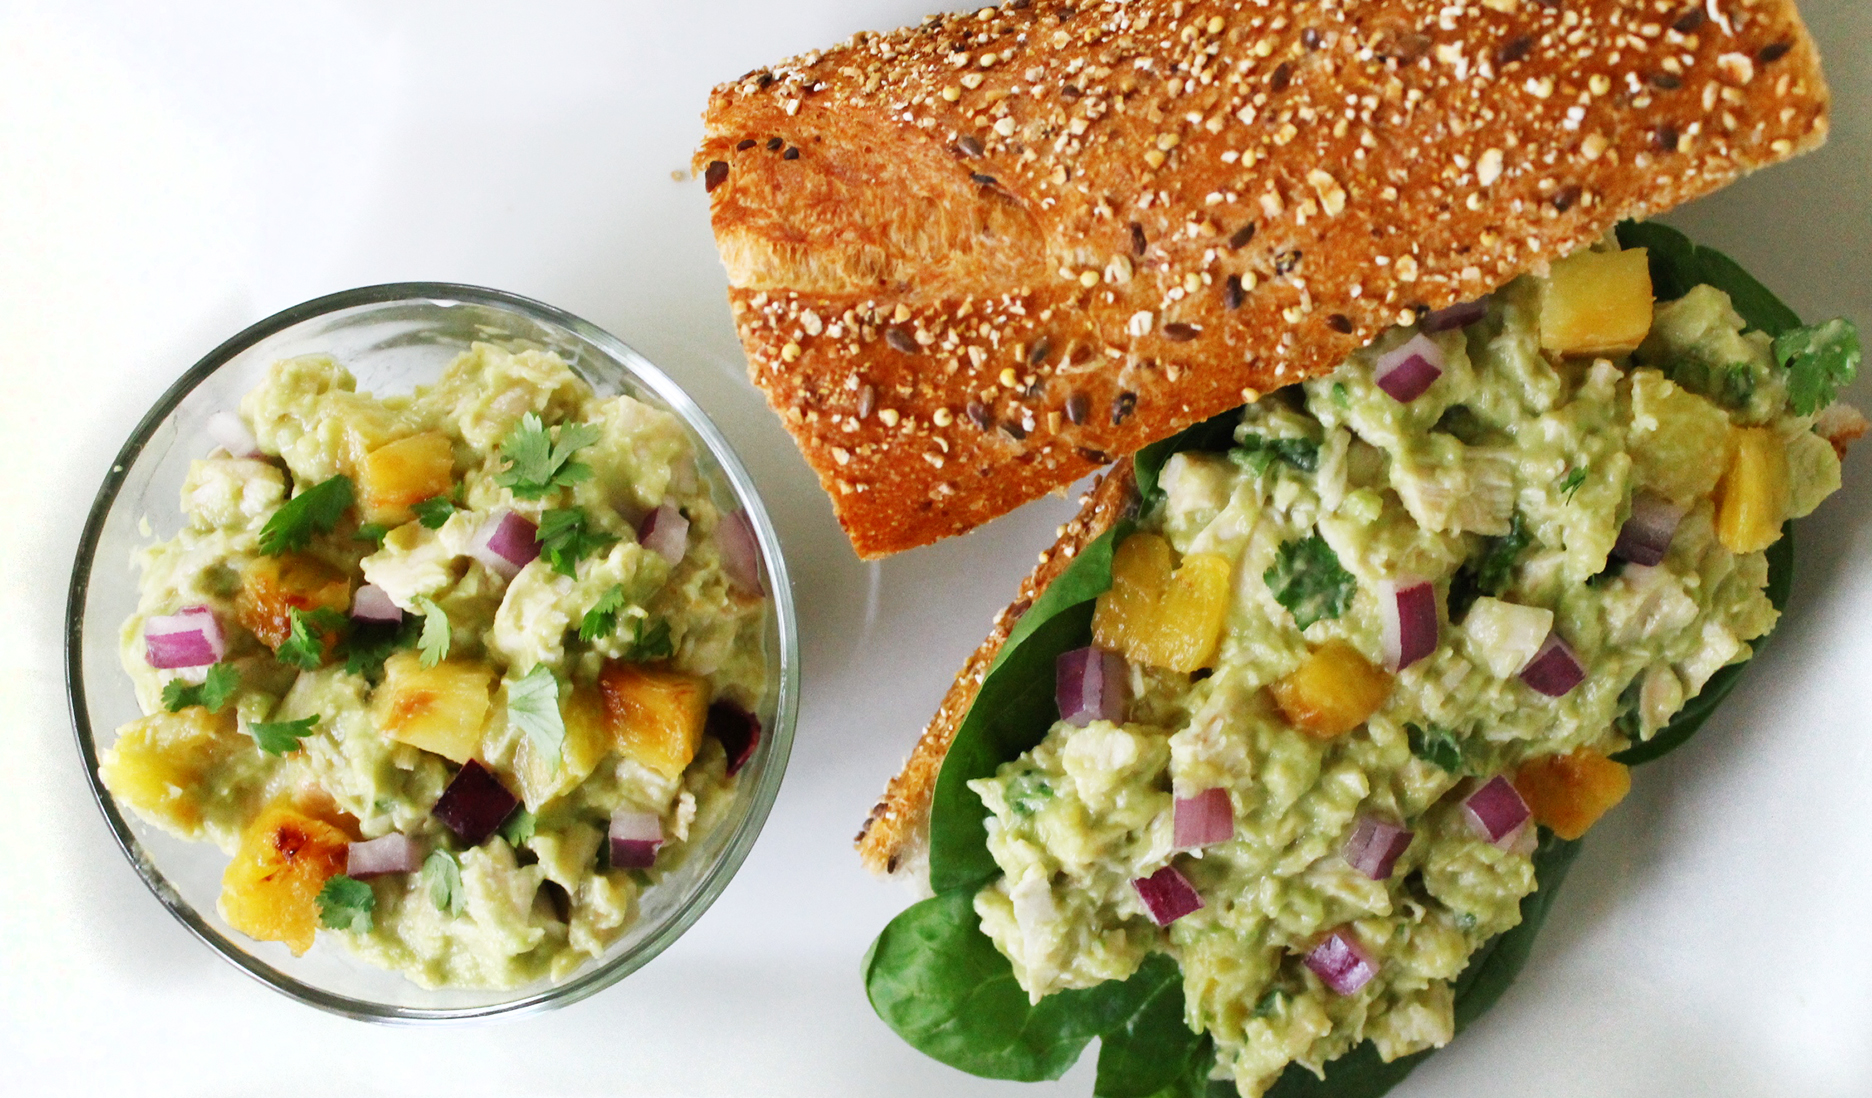 Skinny Avocado and Pineapple Chicken Salad Sandwich